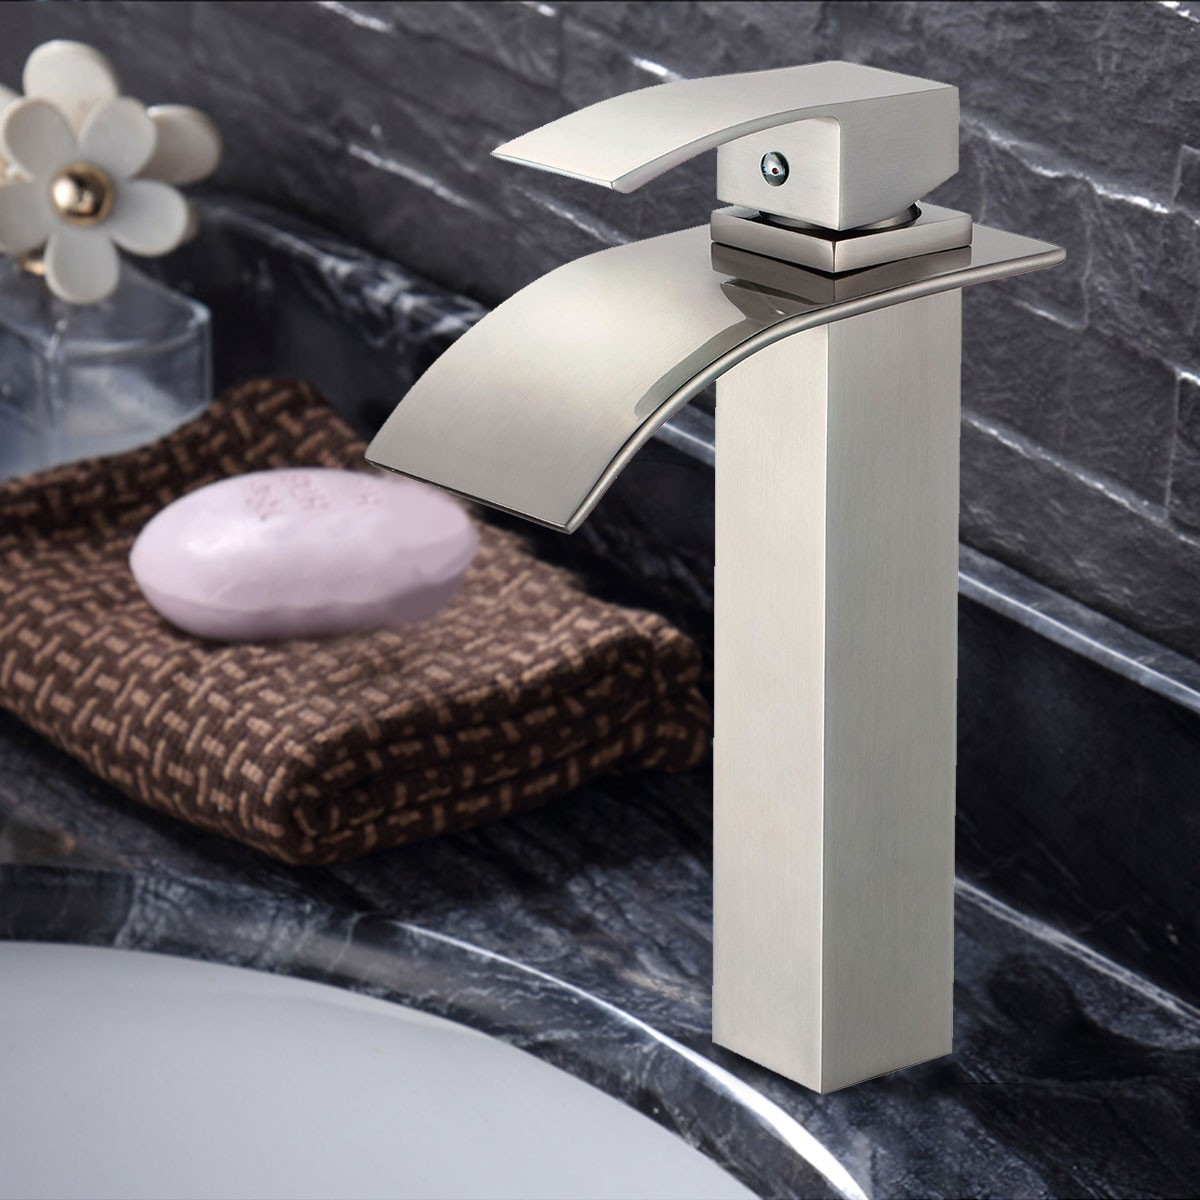 Basin Sink Waterfall Faucet Brass In Brushed Nickel 81h36 Bn